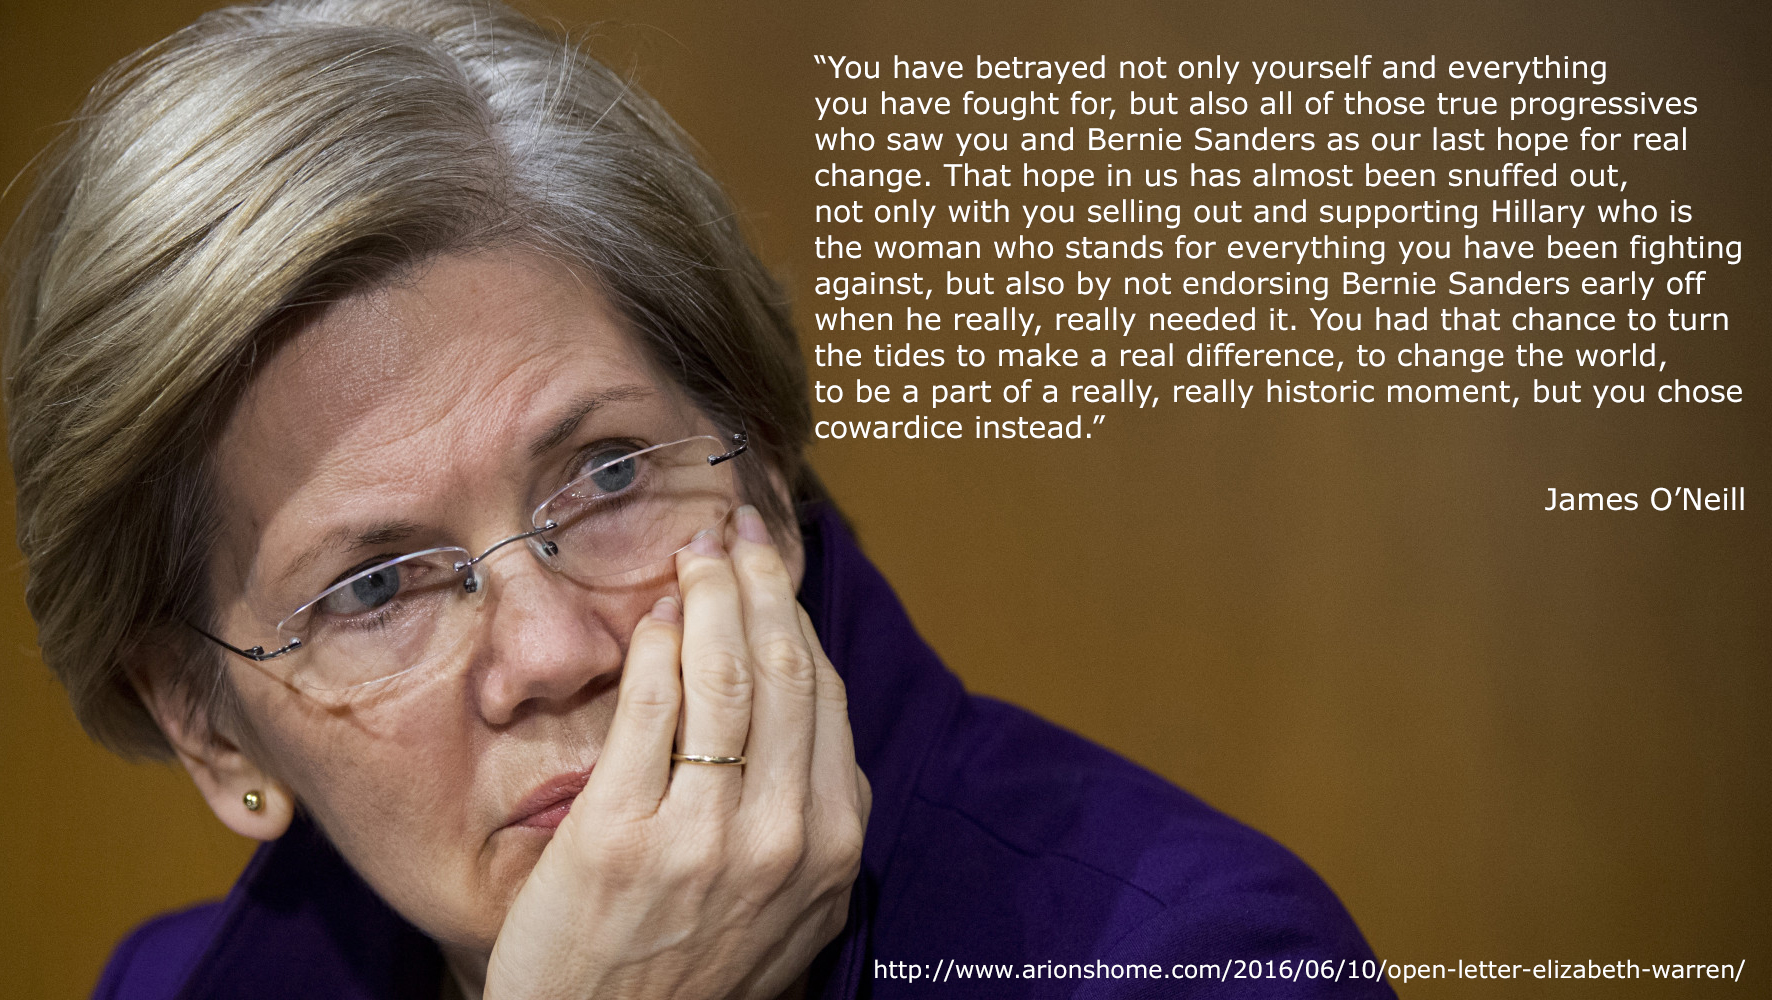 """You have betrayed not only yourself and everything you have fought for, but also all of those true progressives who saw you and Bernie Sanders as our last hope for real change. That hope in us has almost been snuffed out, not only with you selling out and supporting Hillary who is the woman who stands for everything you have been fighting against, but also by not endorsing Bernie Sanders early on when he really, really needed it. You had that chance to turn the tides to make a real difference, to change the world, to be a part of a really, really historic moment, but you chose cowardice instead."""